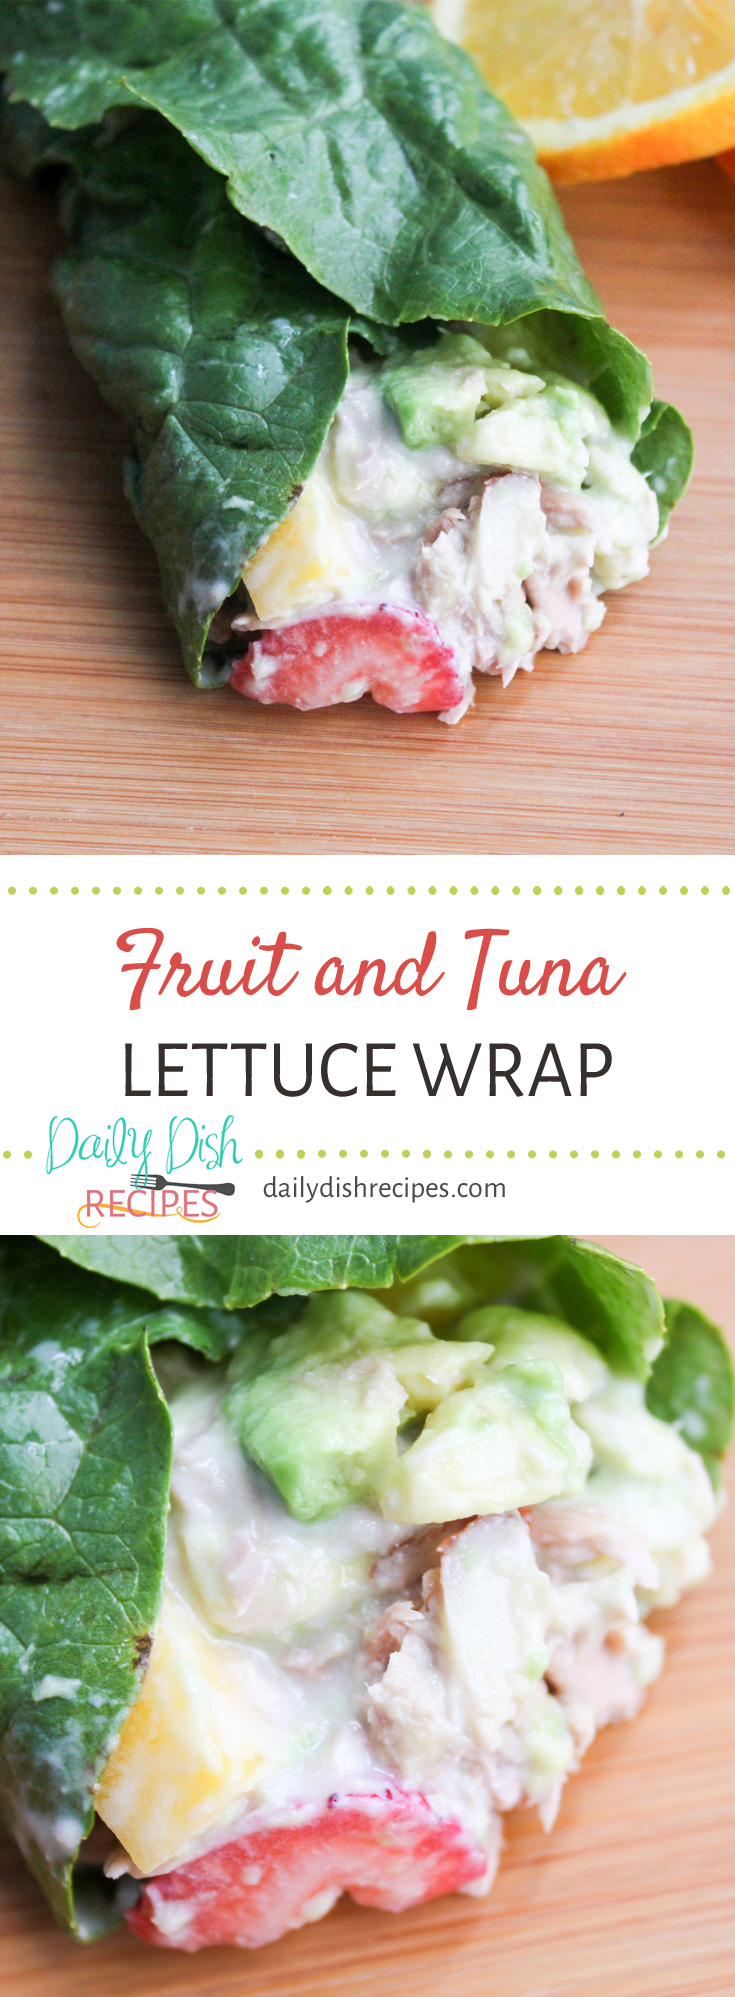 Savory and sweet mix in this Fruit and Tuna Lettuce Wrap for a wonderfully healthy, extremely easy lunch or dinner idea.